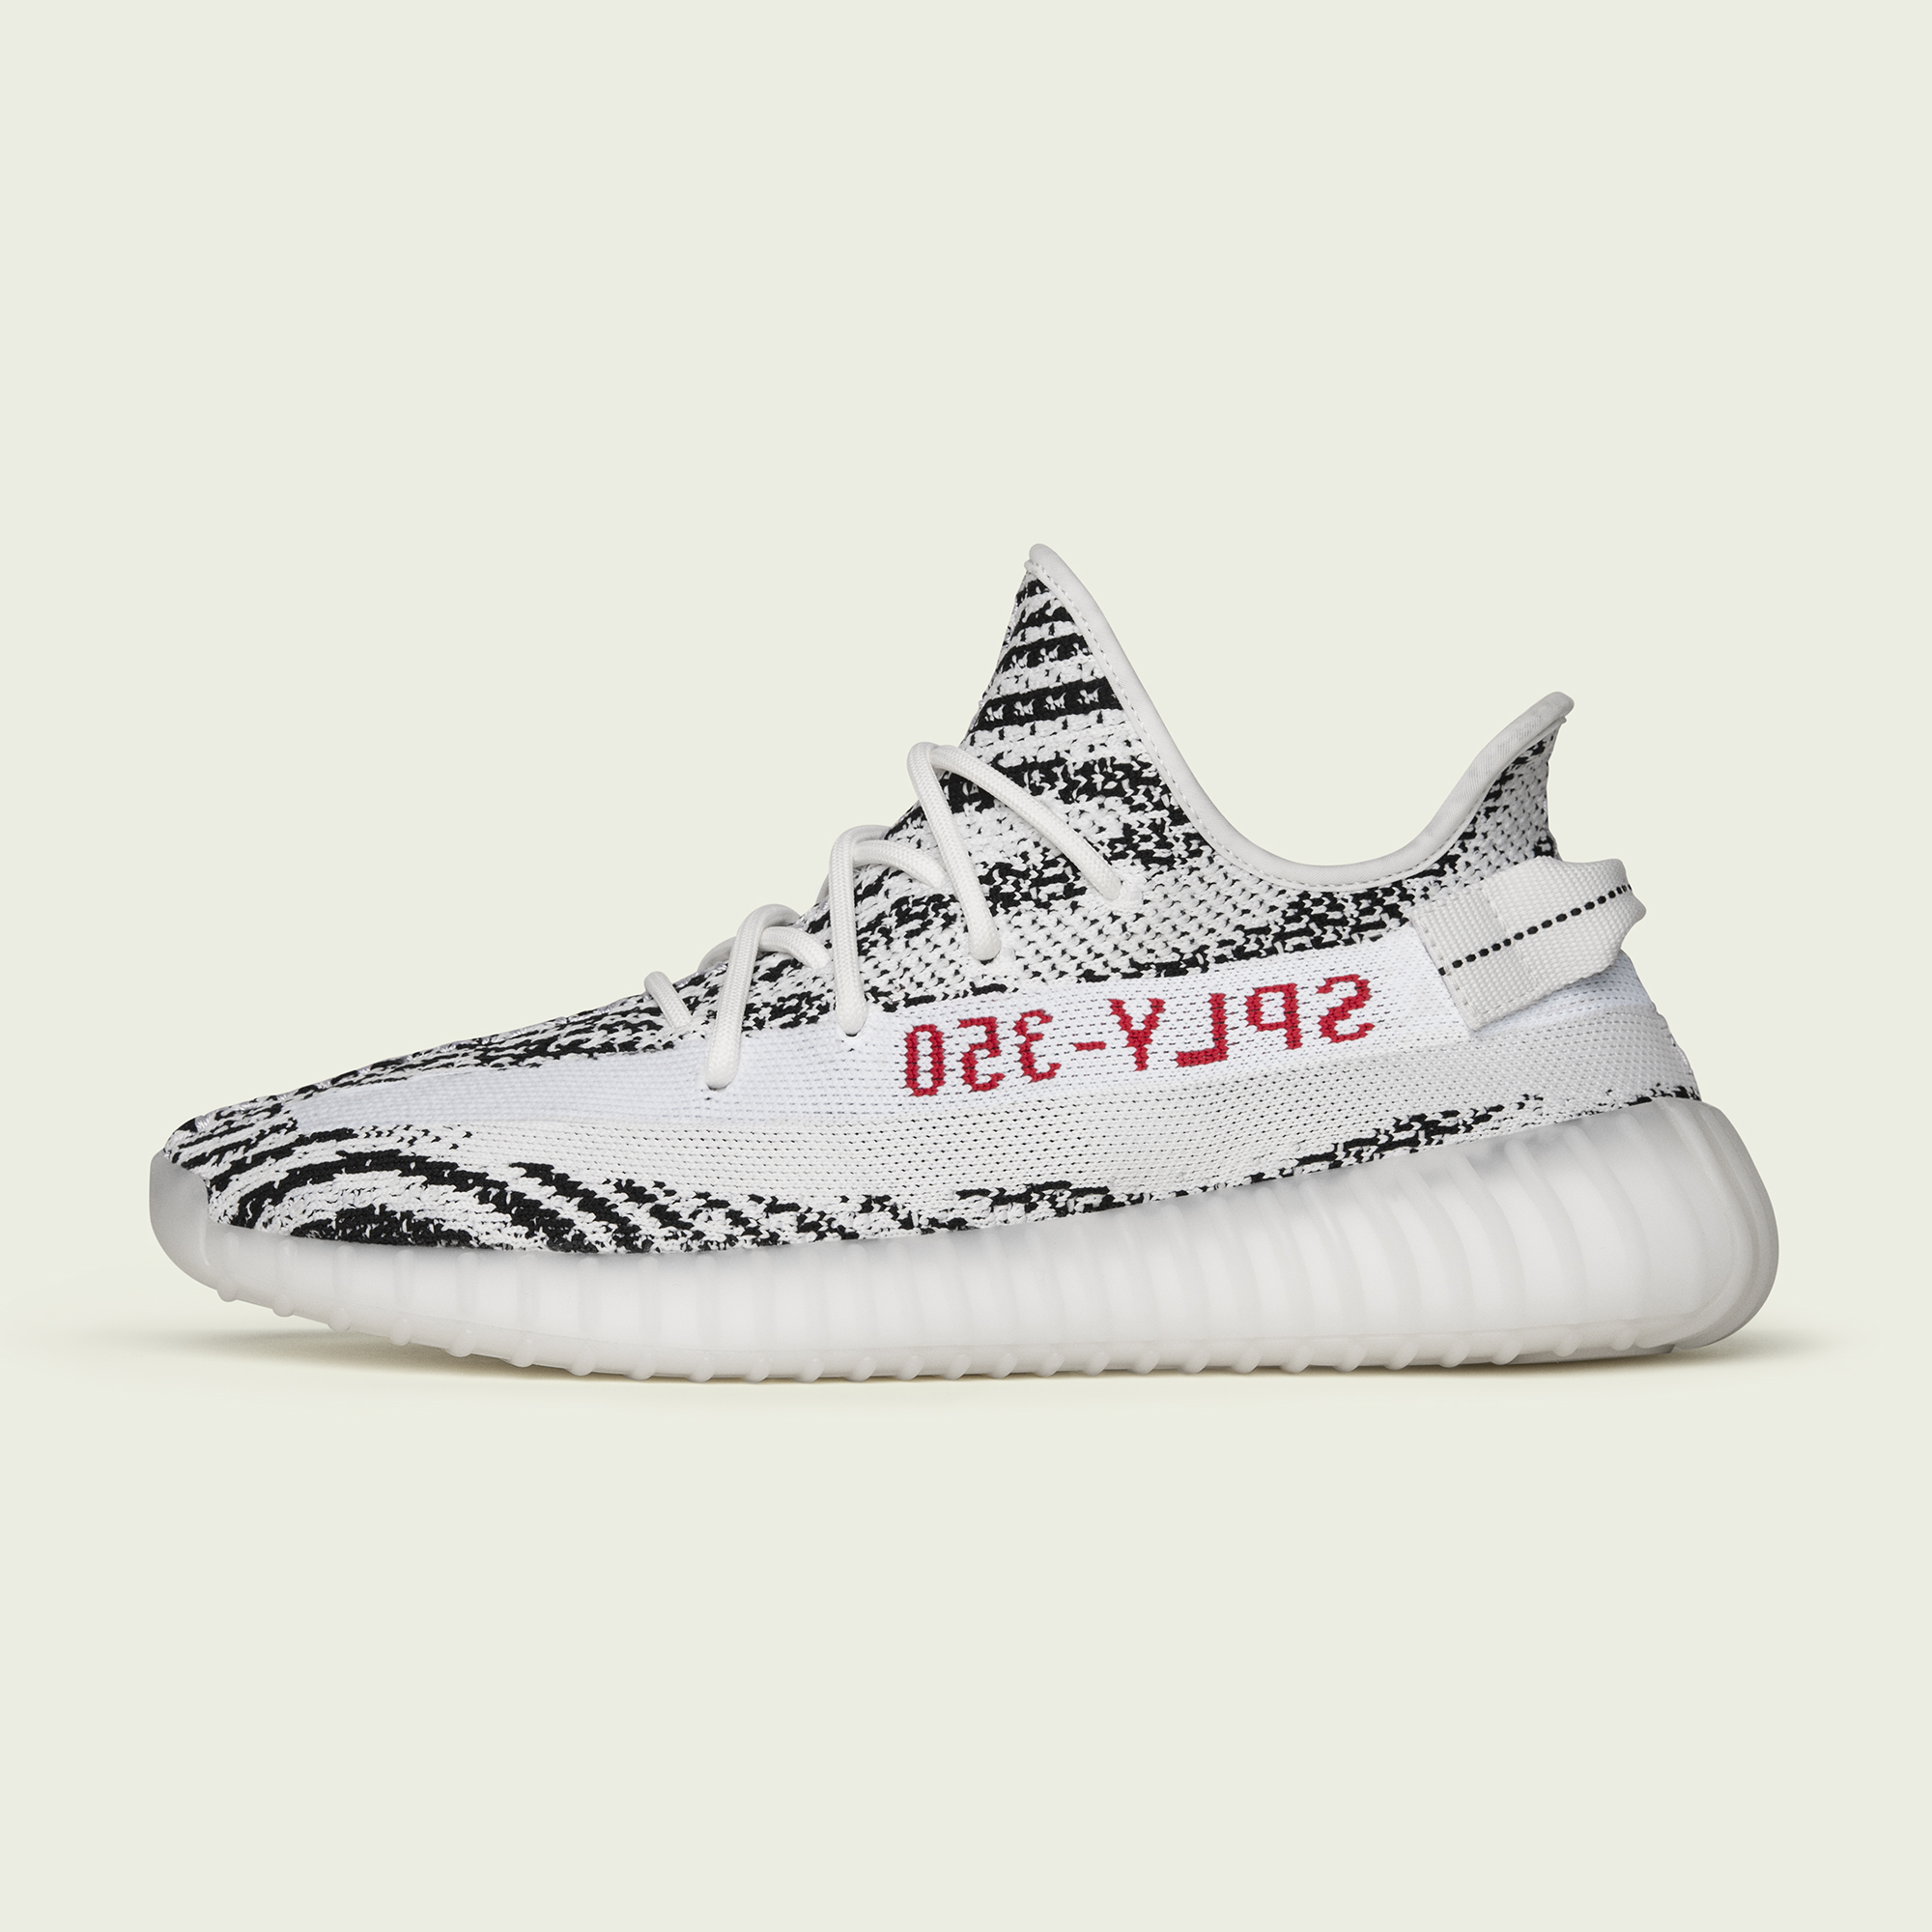 Sophia's 9th UA Yeezy Boost 350 V2 Oreo SPLY 350 Black/White, the